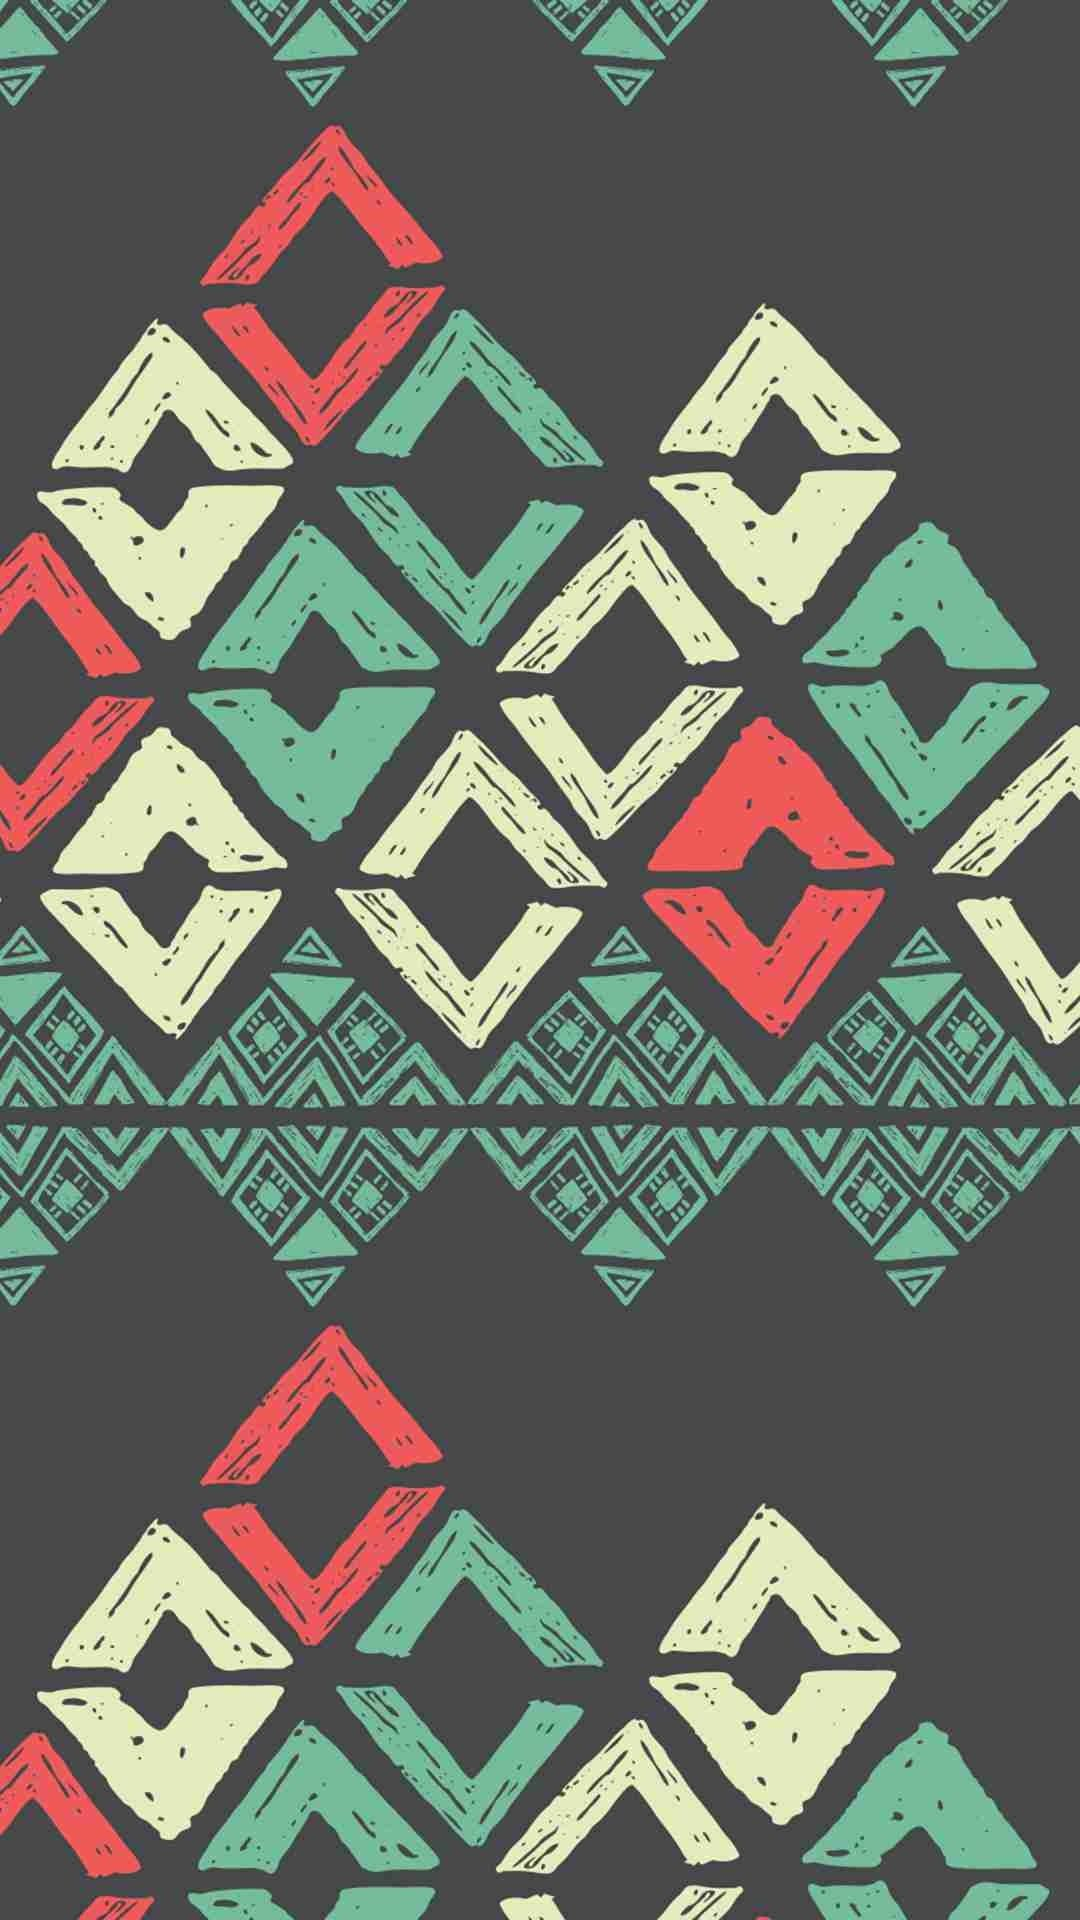 Wallpaper iphone retro - Vintage Black Background Tribal Print Big Chevron Iphone 6 Plus Wallpaper Square Pattern